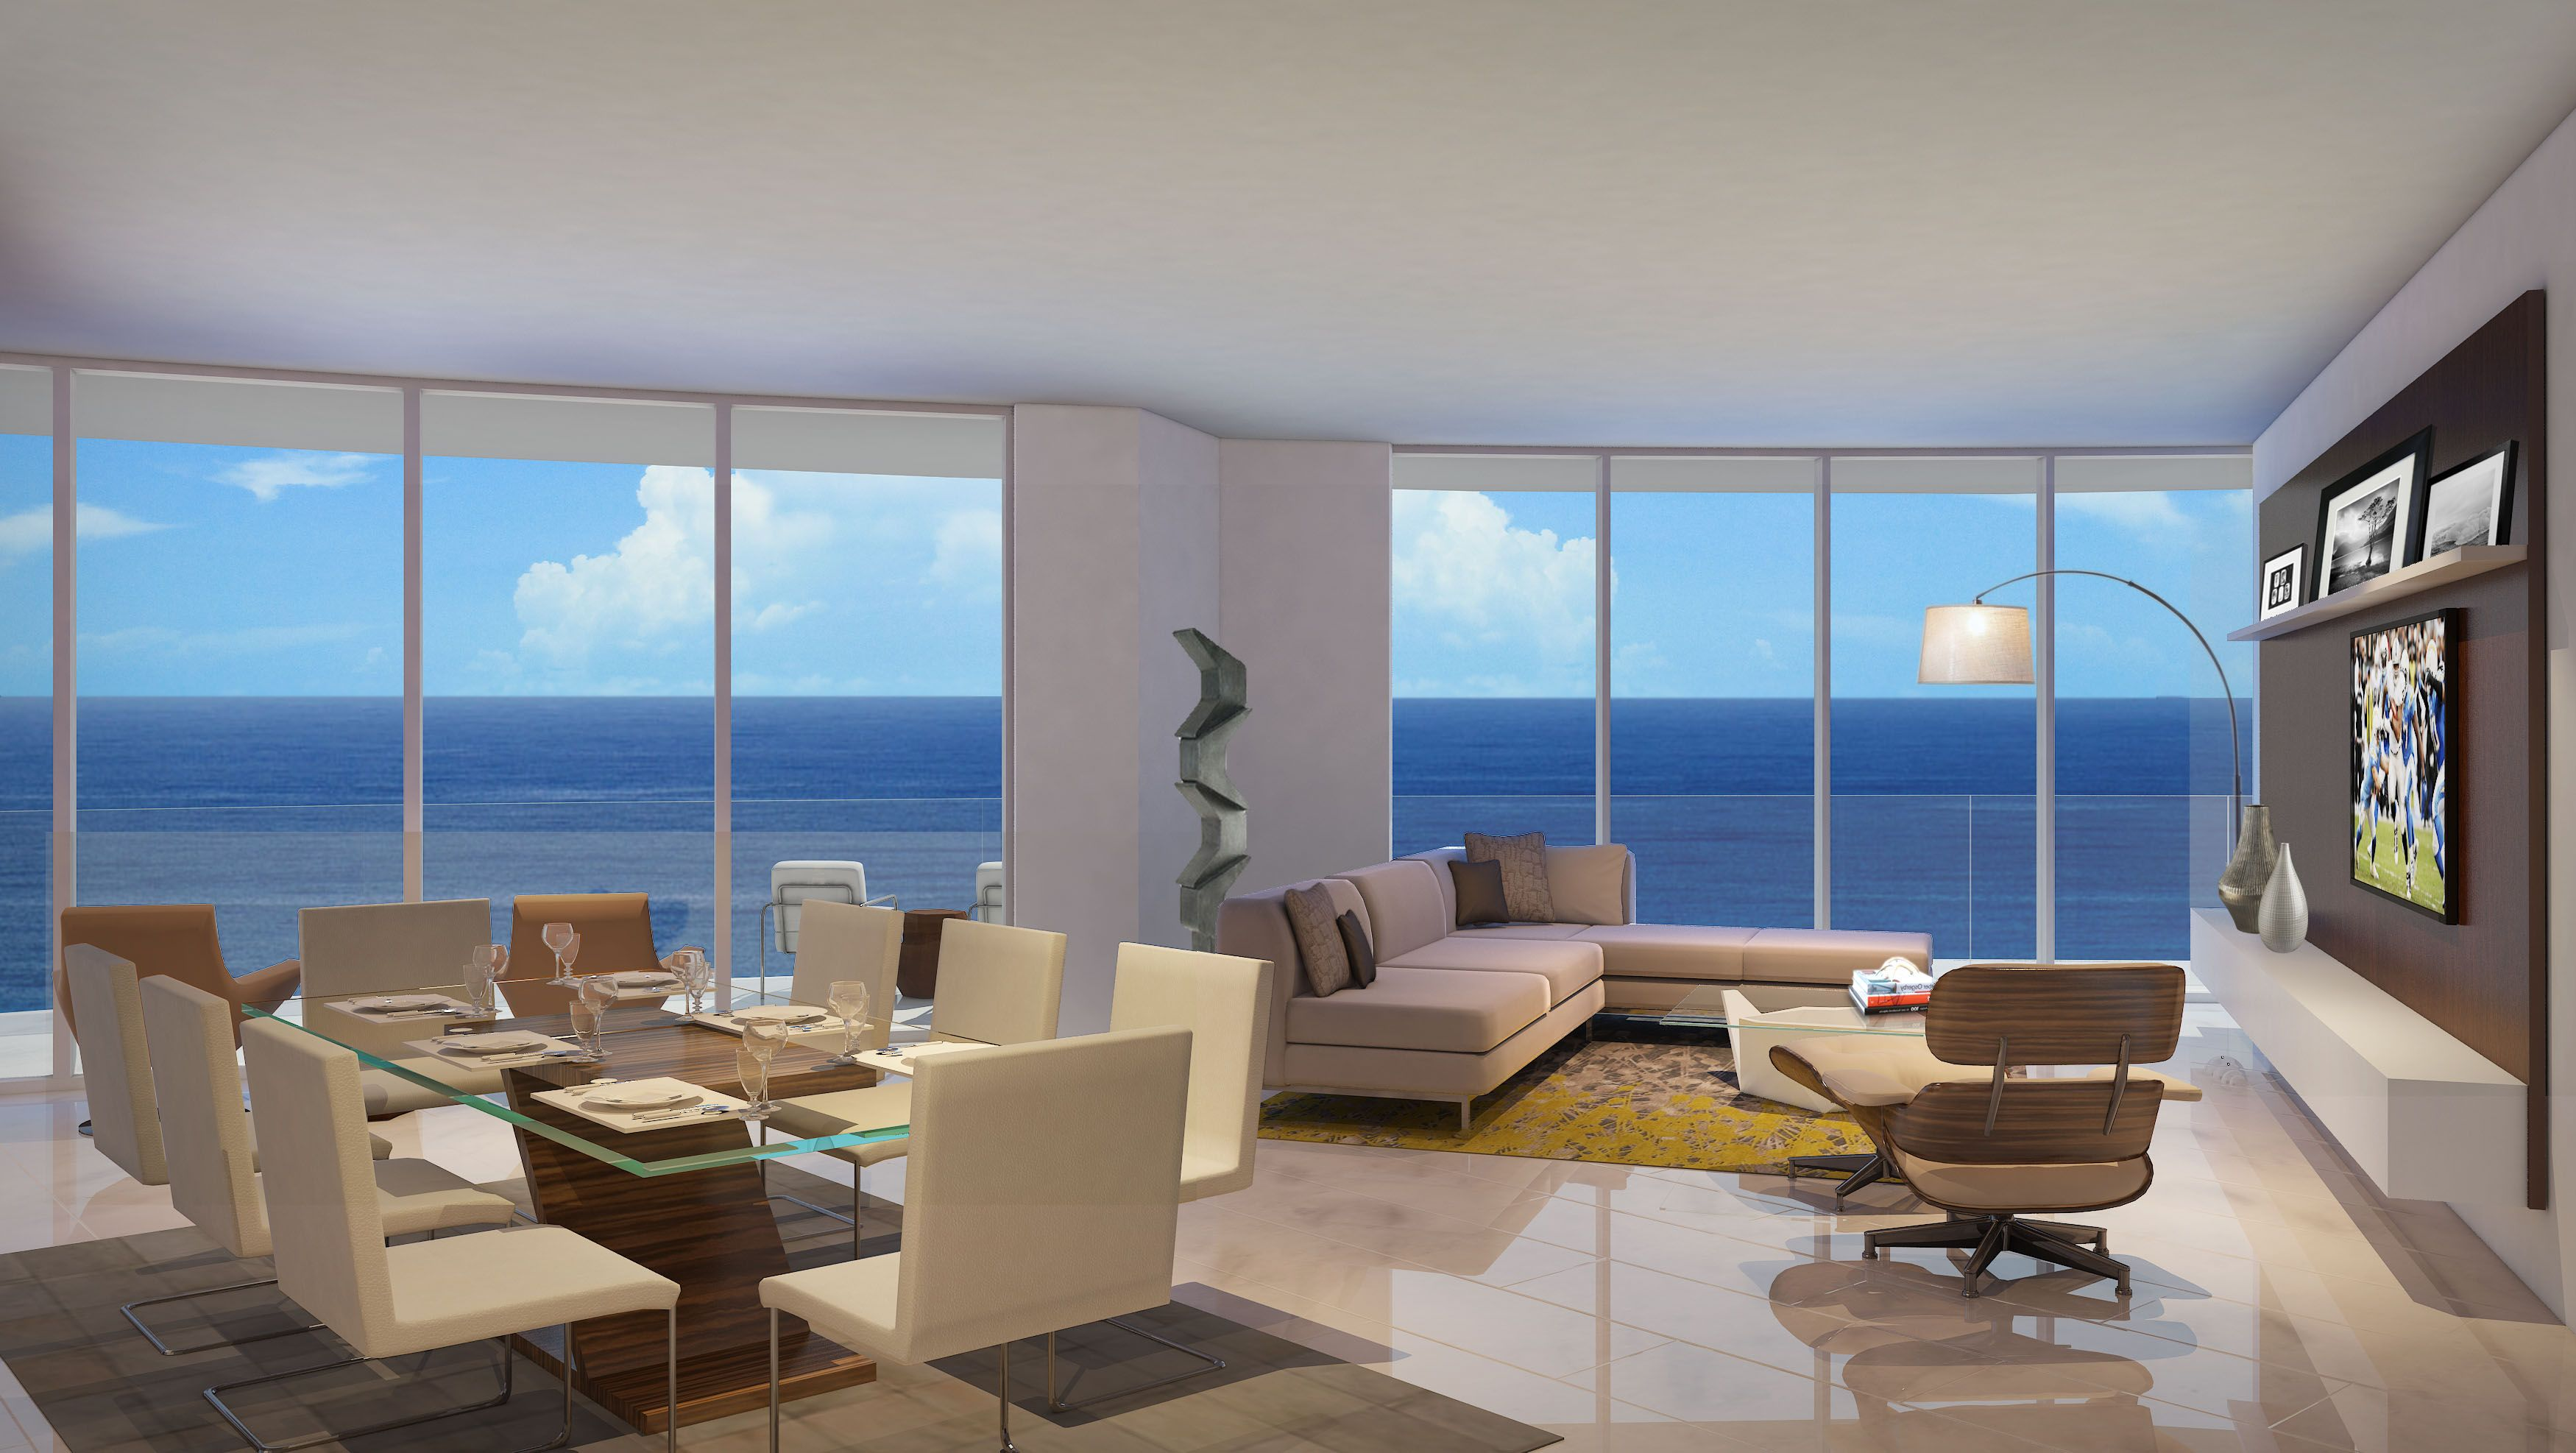 Paramount Residence A Living Room Concept Fortlauderdale Condos Beach Luxury Kitchen Contemporary Des Luxury Condo Lauderdale Beach Luxury Real Estate